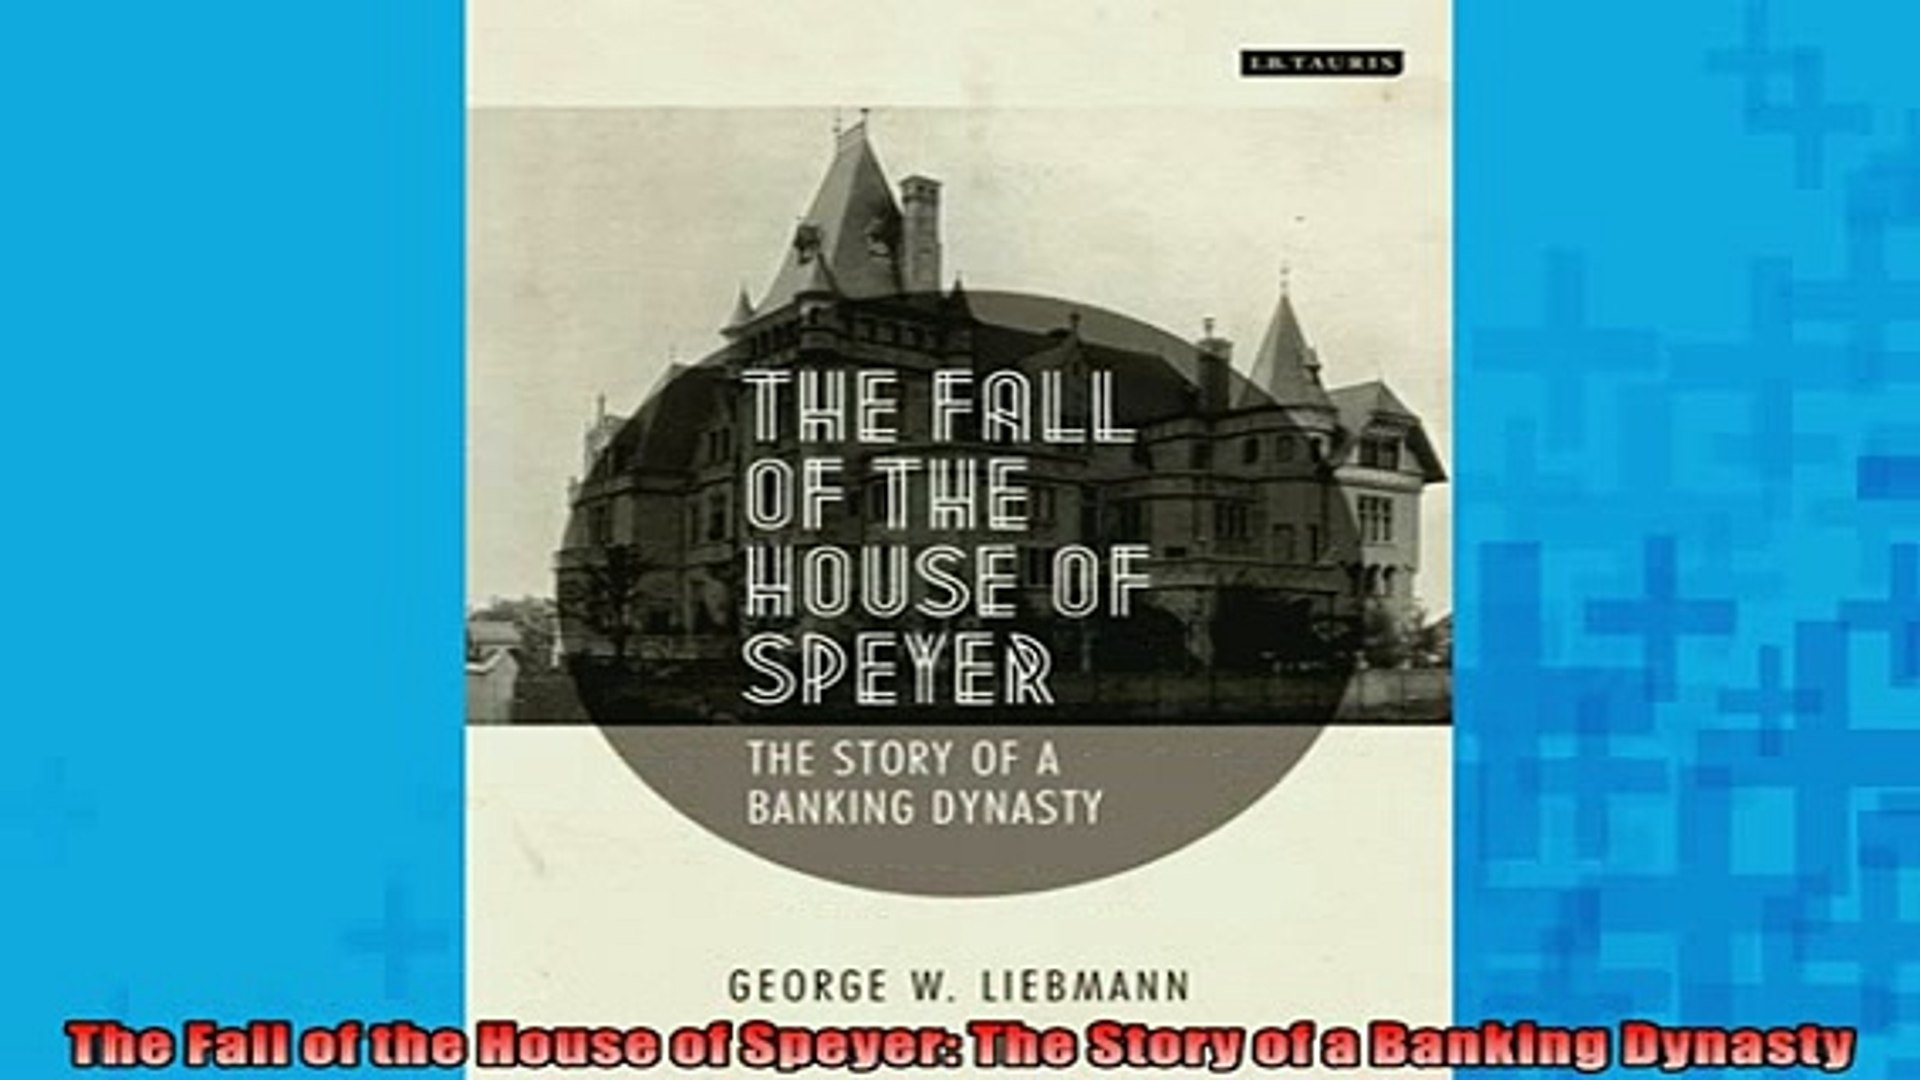 READ THE NEW BOOK   The Fall of the House of Speyer The Story of a Banking Dynasty READ ONLINE